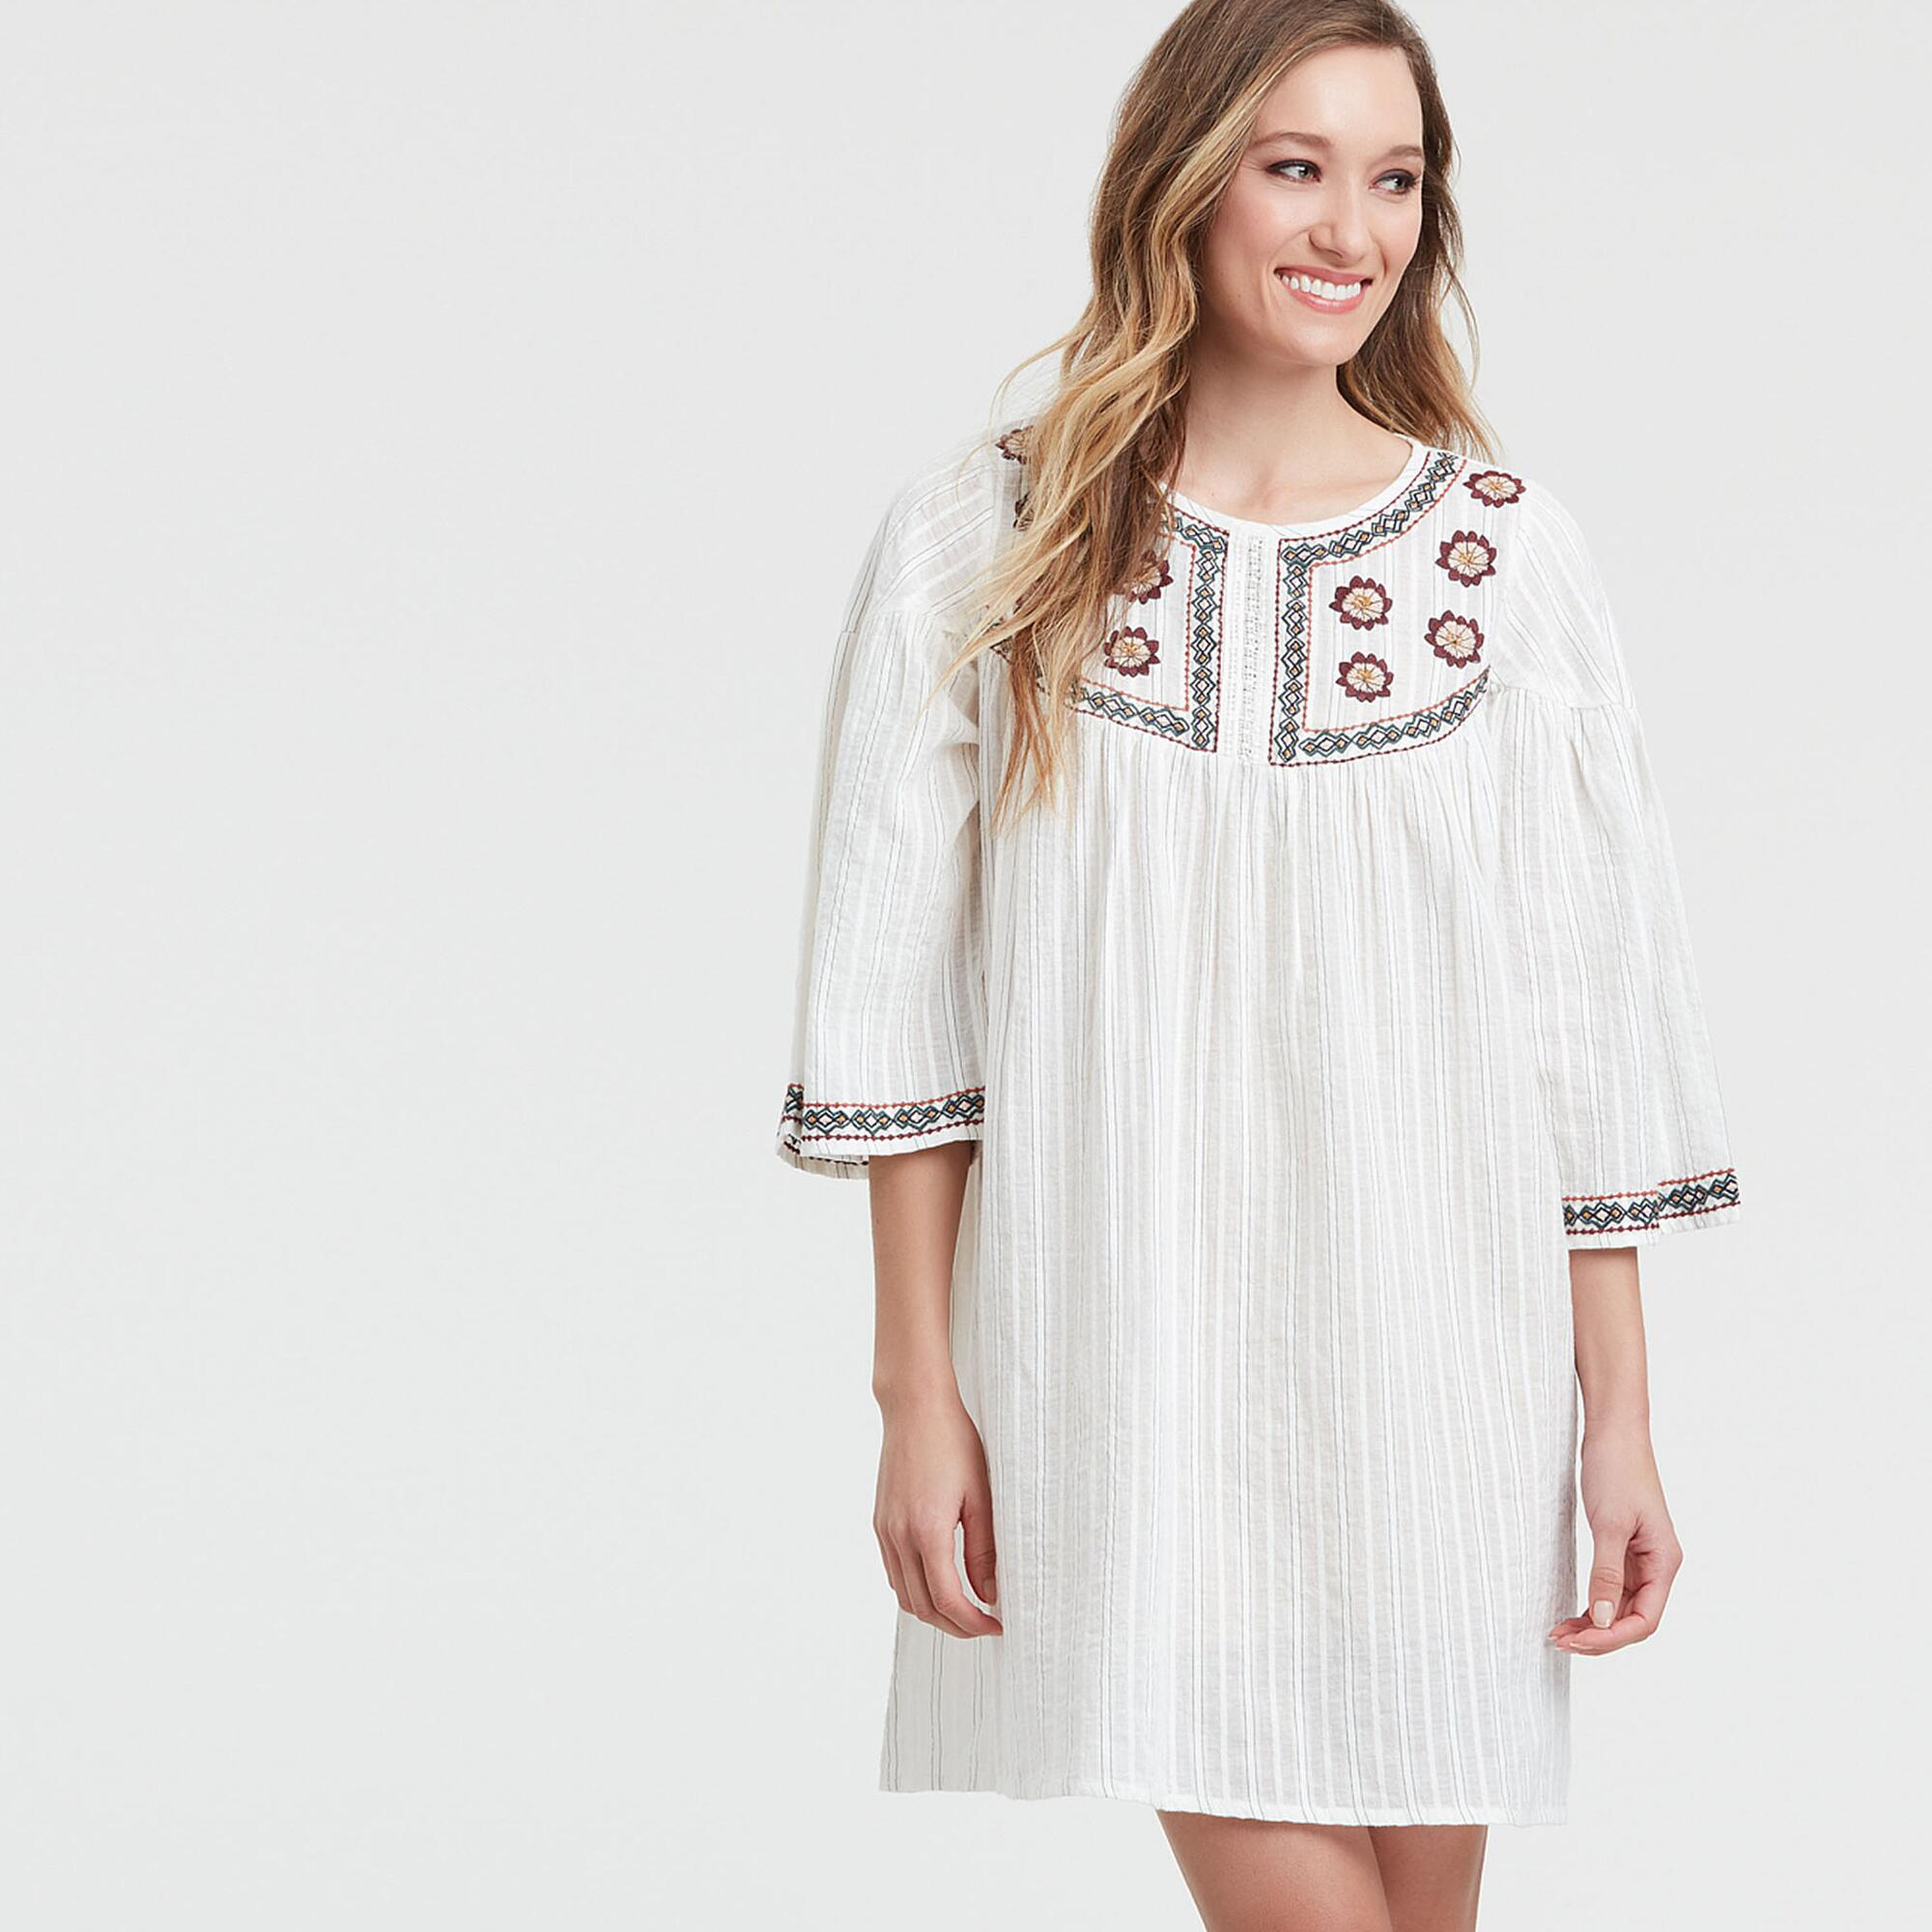 70s Outfits – 70s Style Ideas for Women White Embroidered Hesperia Dress - Smmd by World Market Smmd $39.99 AT vintagedancer.com